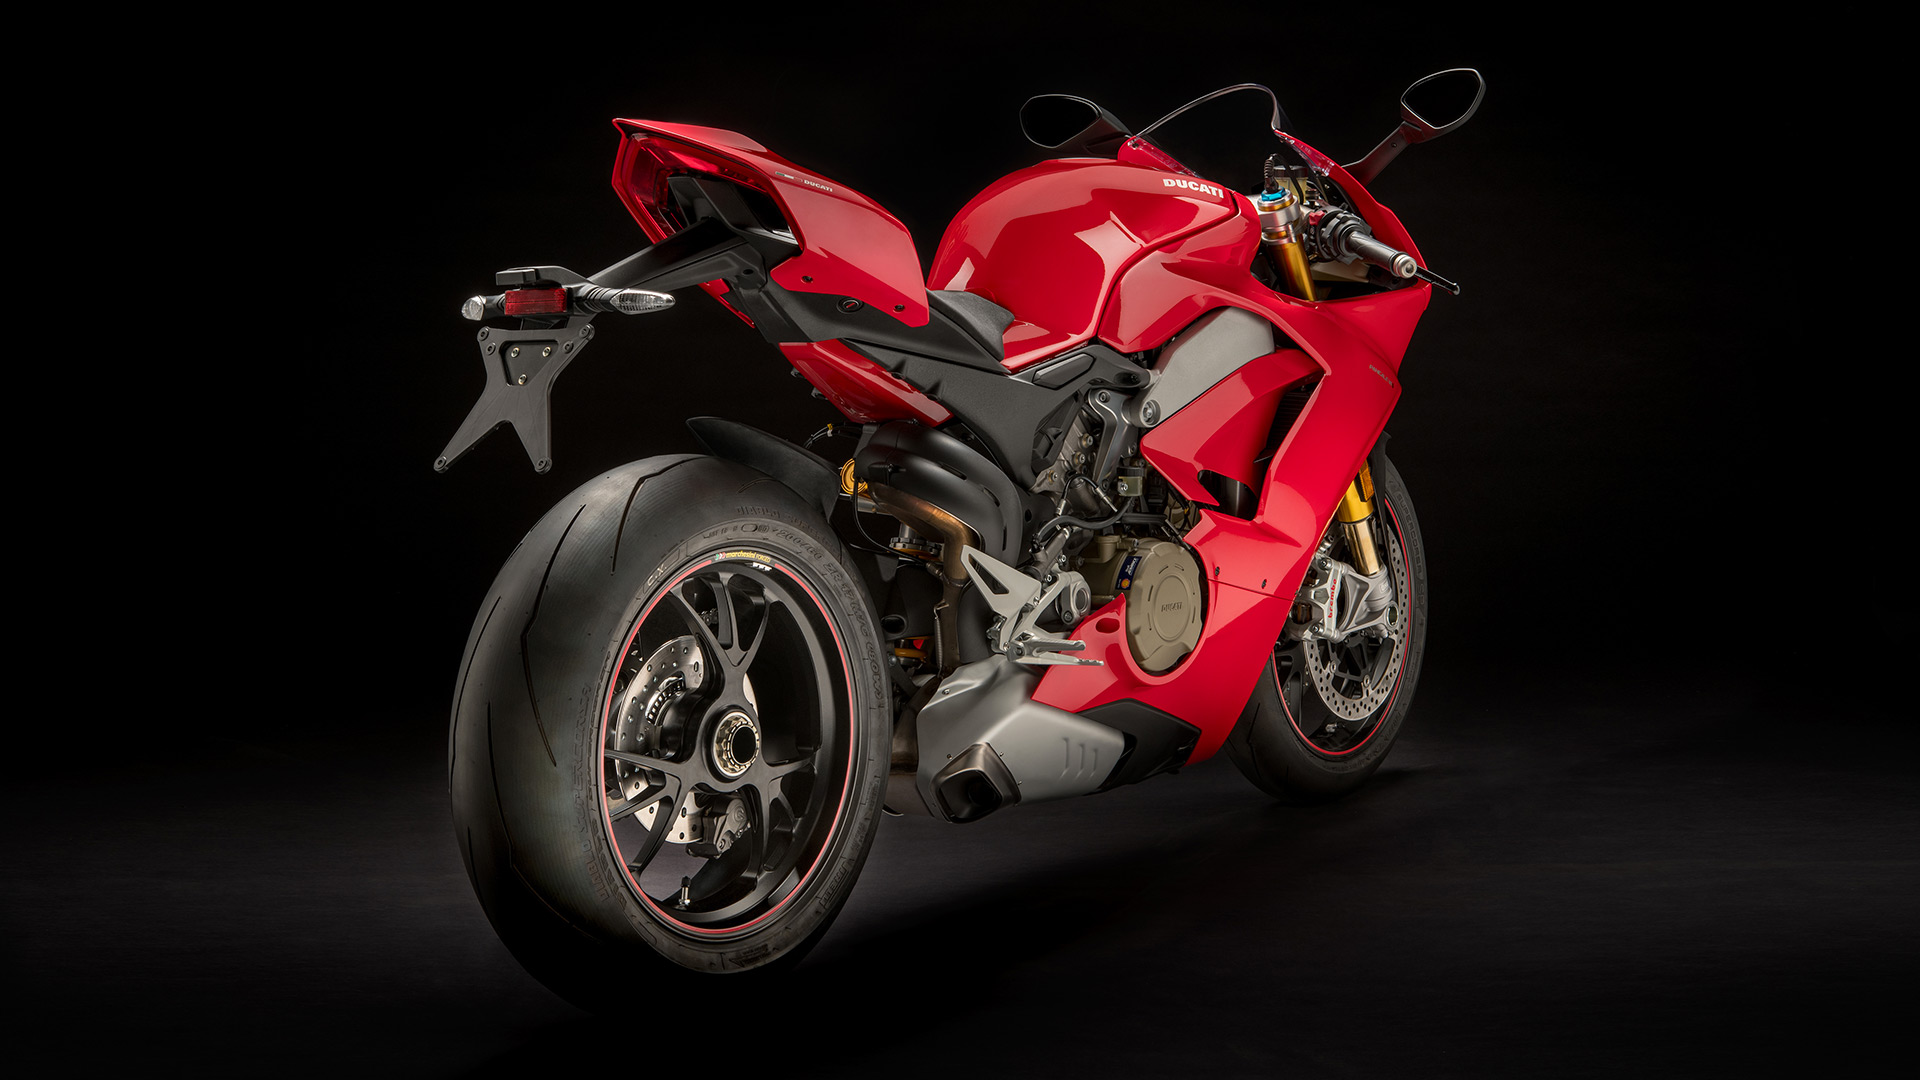 Panigale V4 Pre Bookings Open For A Limited Number Of Units